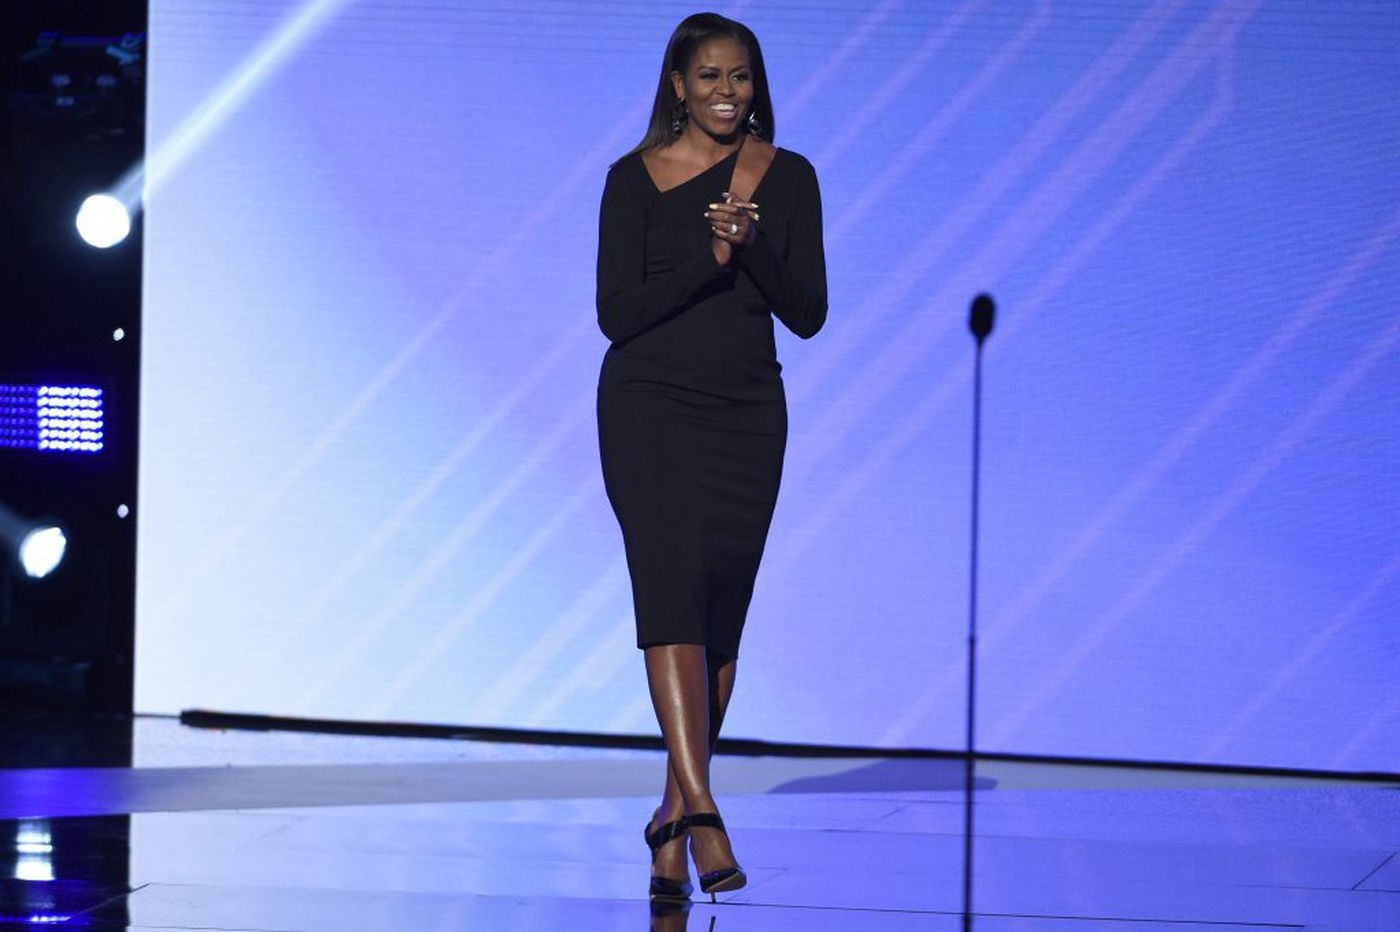 Michelle Obama's ESPY dress was daring - but we expect that from her